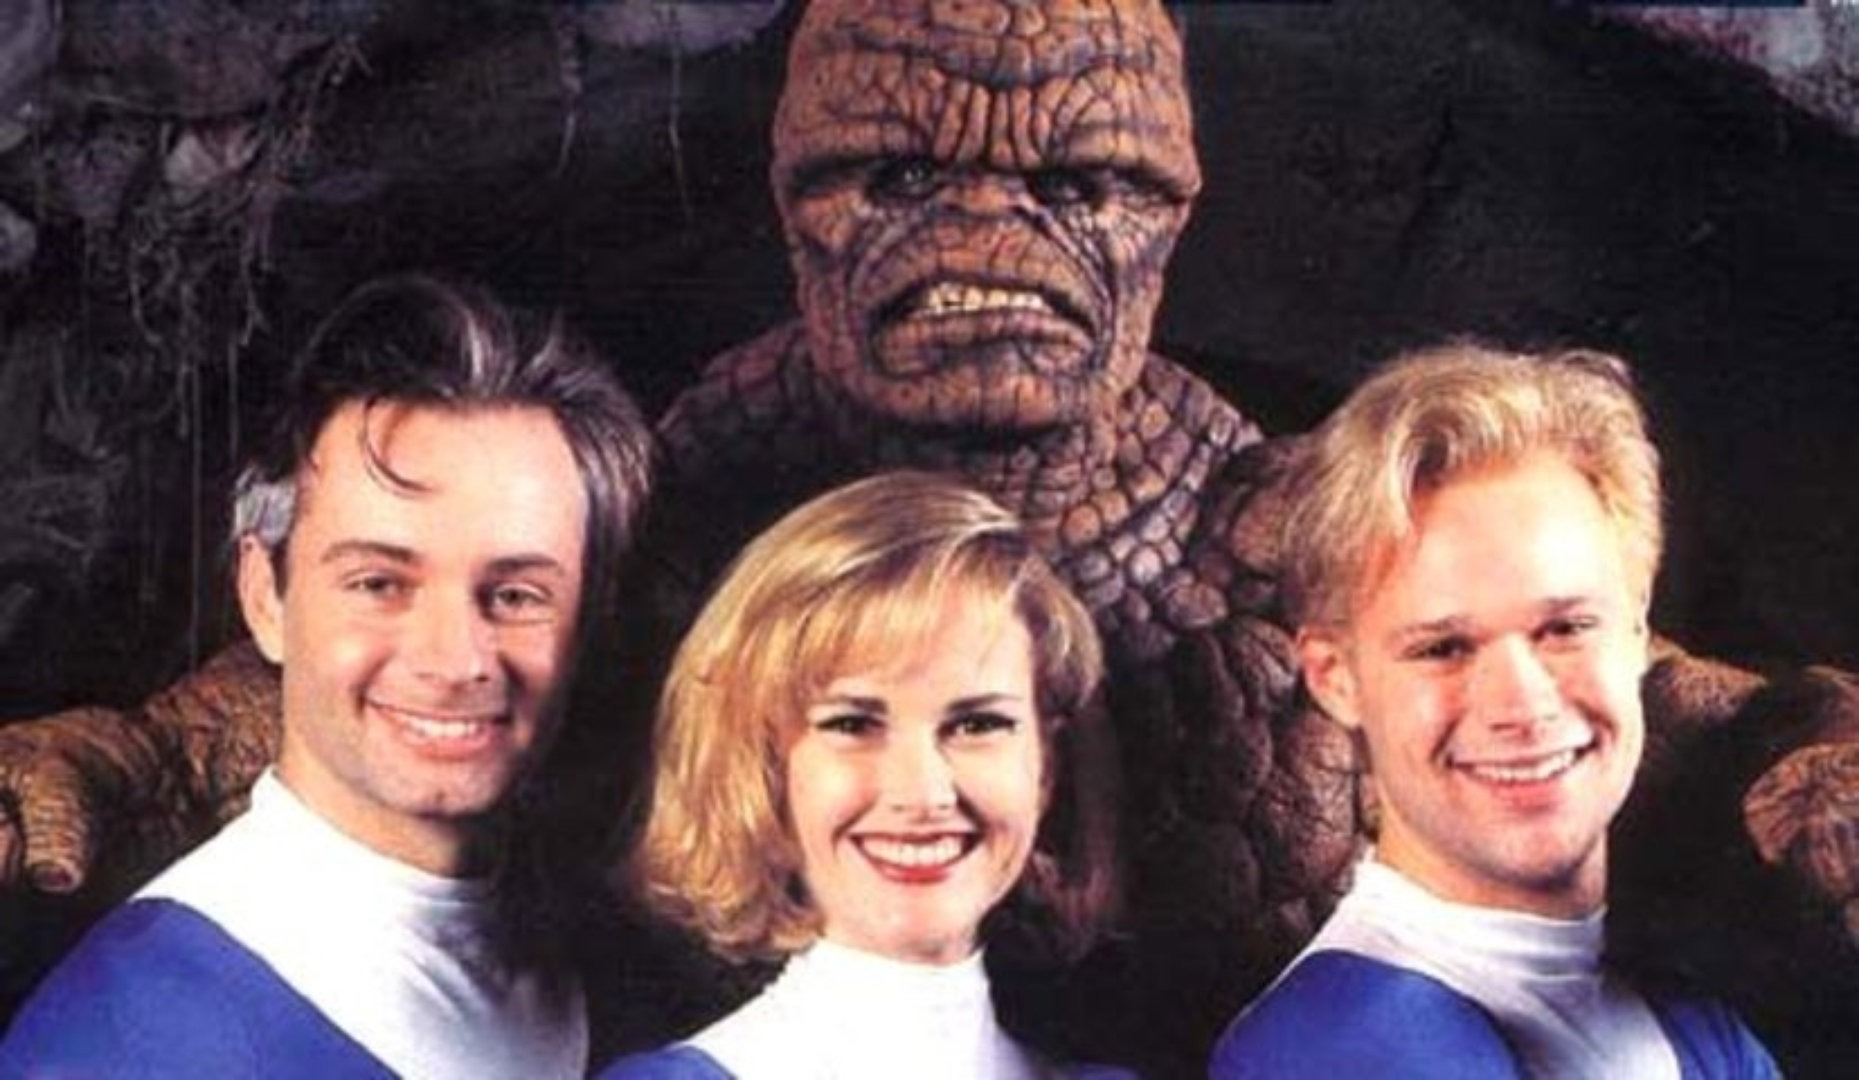 Alex Hyde-White as Reed Richards, Rebecca Staab as Susan Storm, Jay Underwood as Johnny Storm, and Carl Ciarfalio as Ben Grimm in The Fantastic Four (1994)